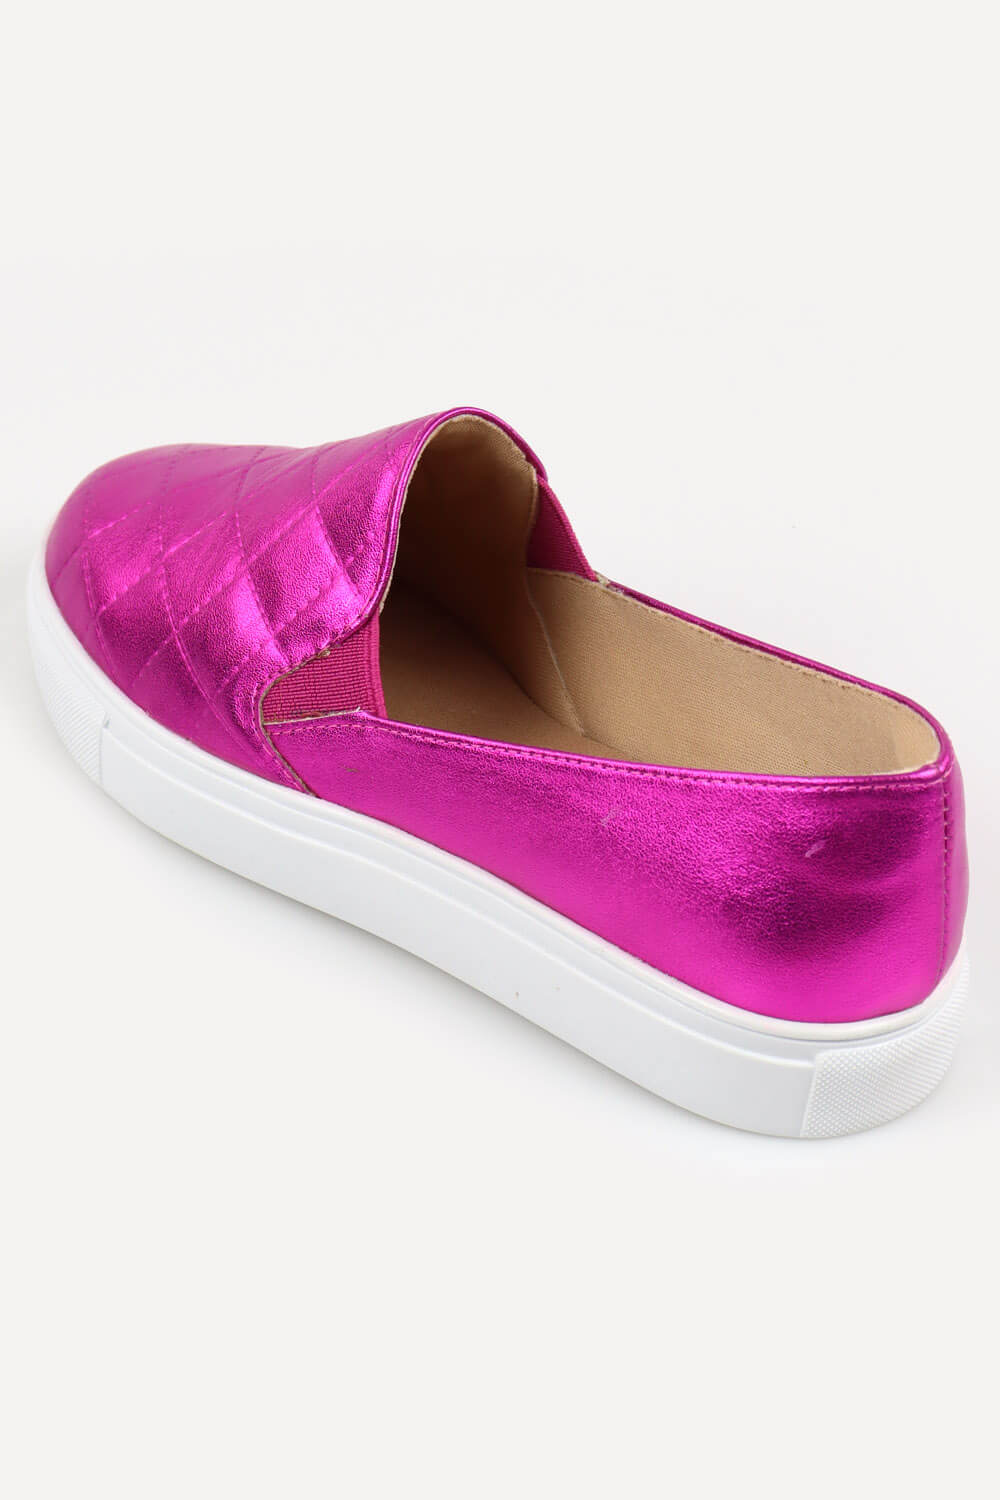 Slip On Chiquiteira Casual Costurado Metalizado Pink ZAD